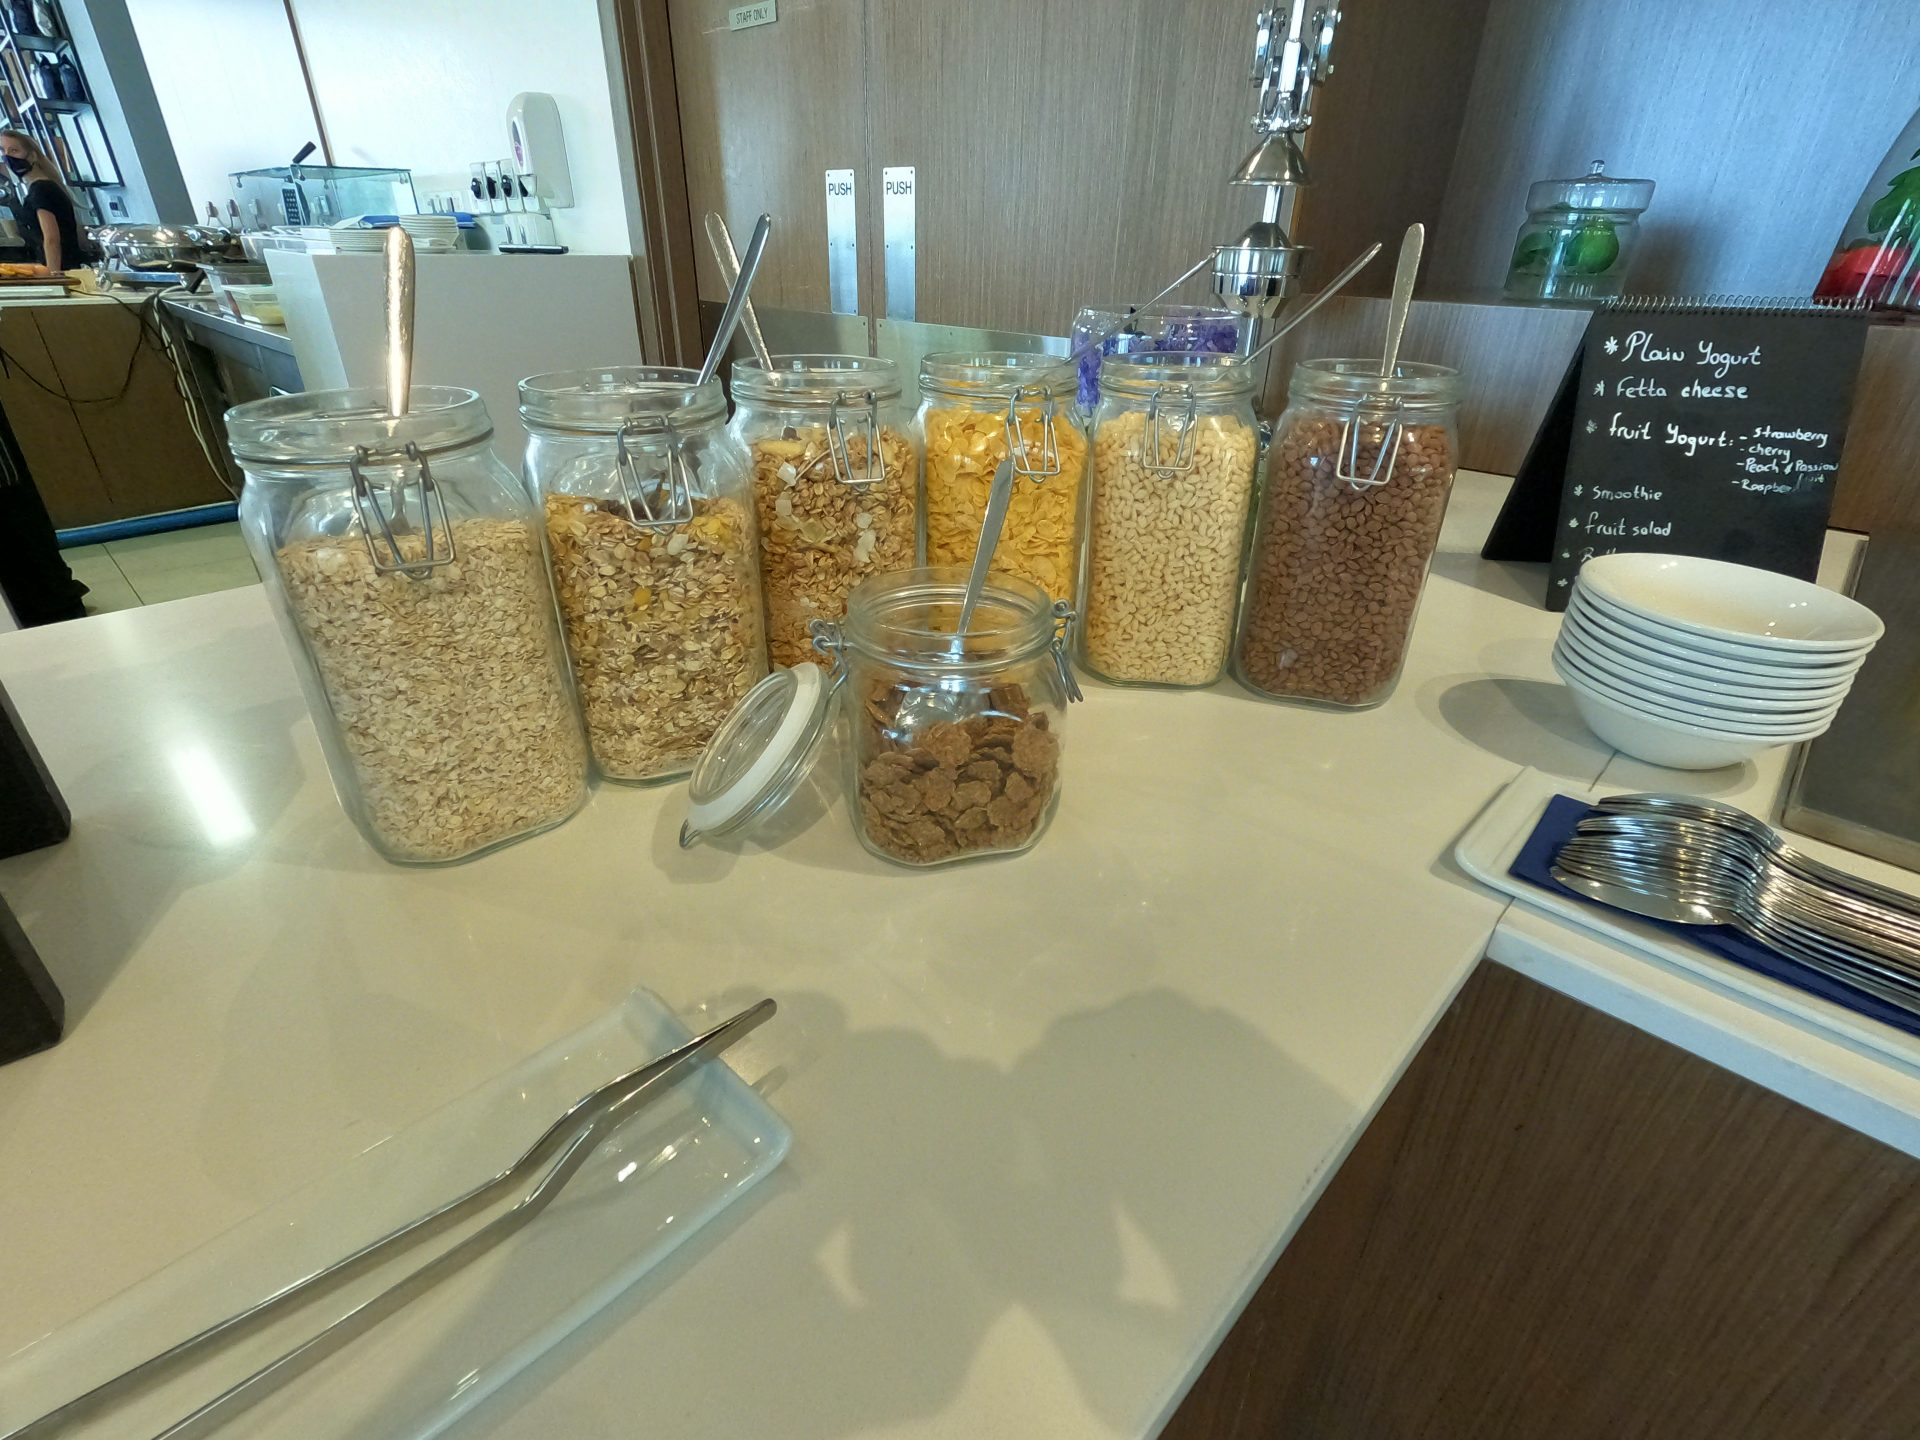 Different types of cereals